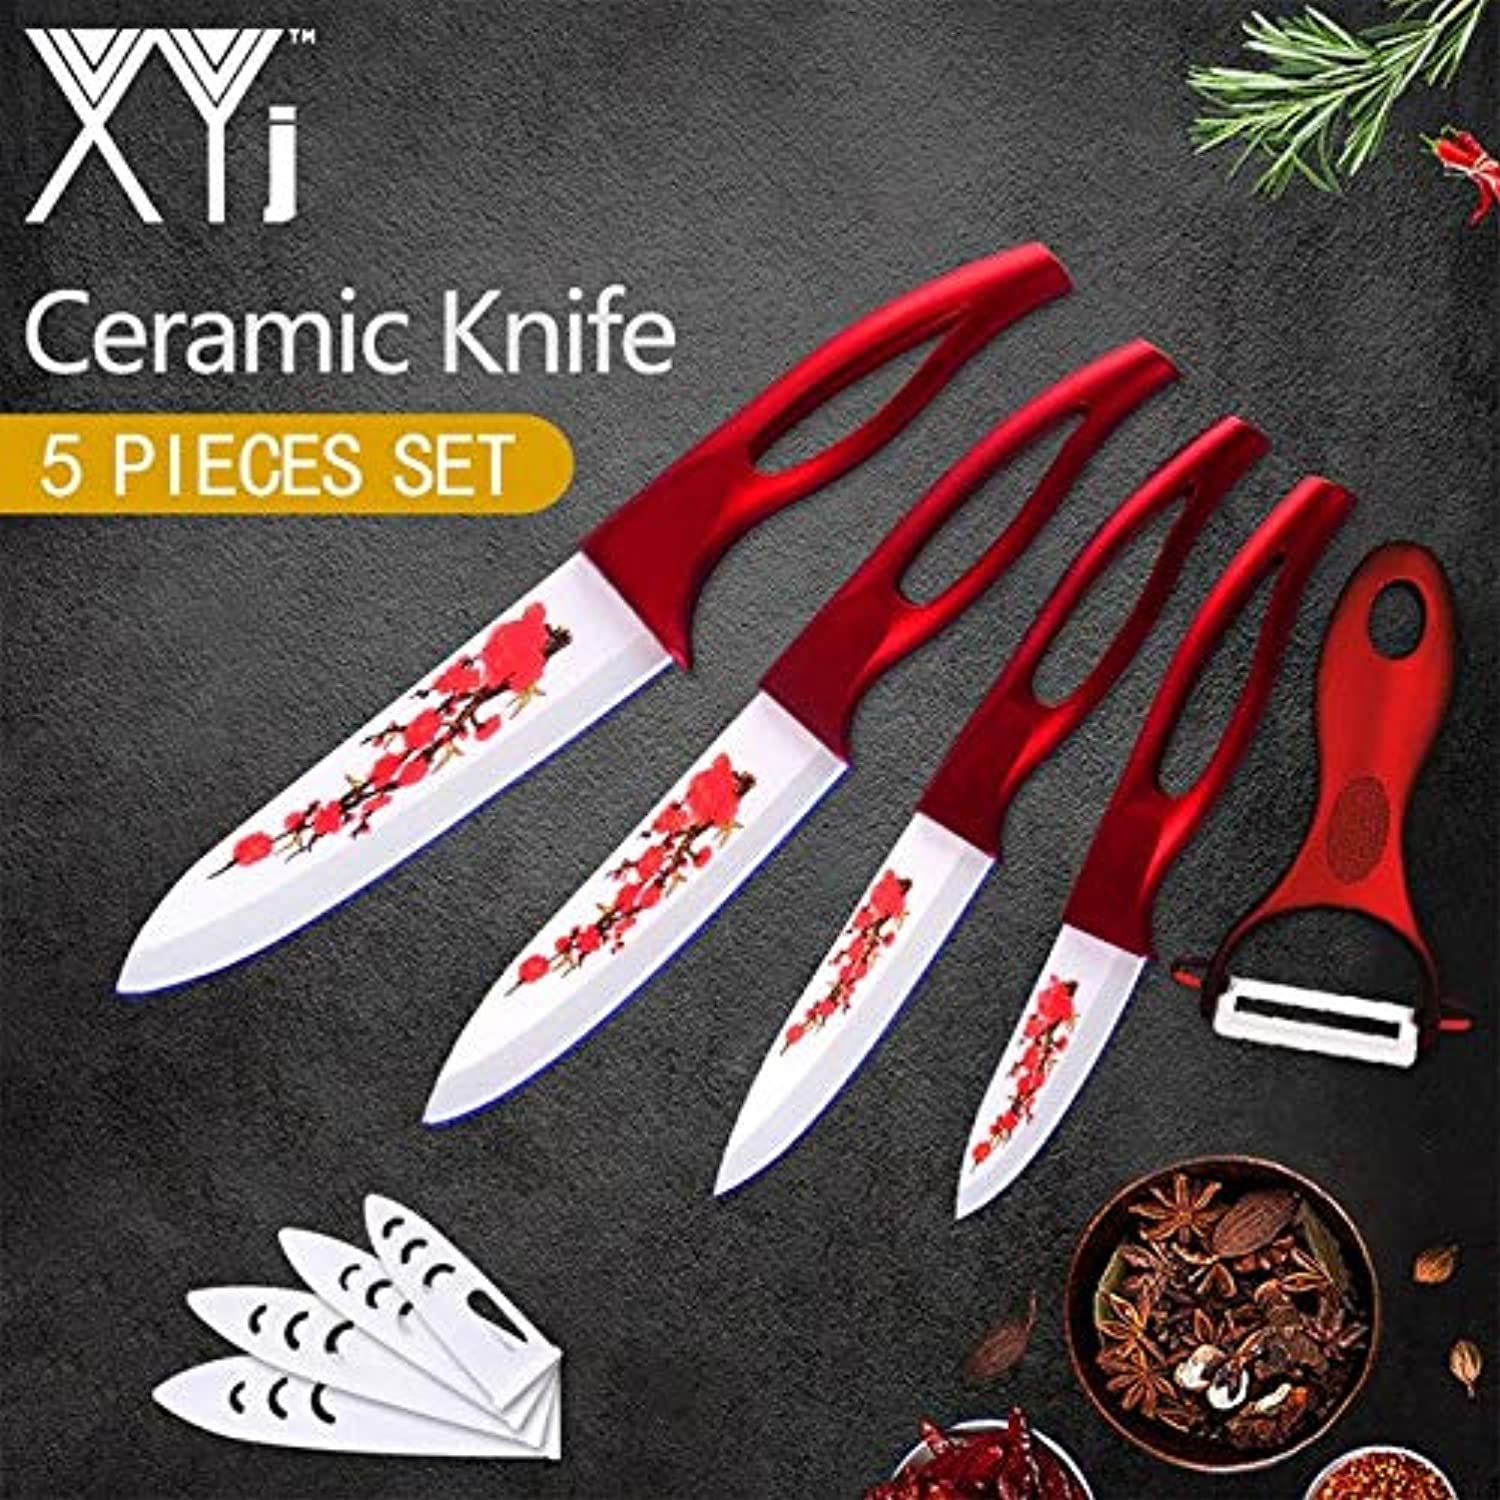 XYj 5 Piece Ceramic Knives Flower Pattern Blade 3 4 5 6 inch ABS+TPR Handle Kitchen Knives Cooking Tool Free Cover and Pleeler   Cherry Blade